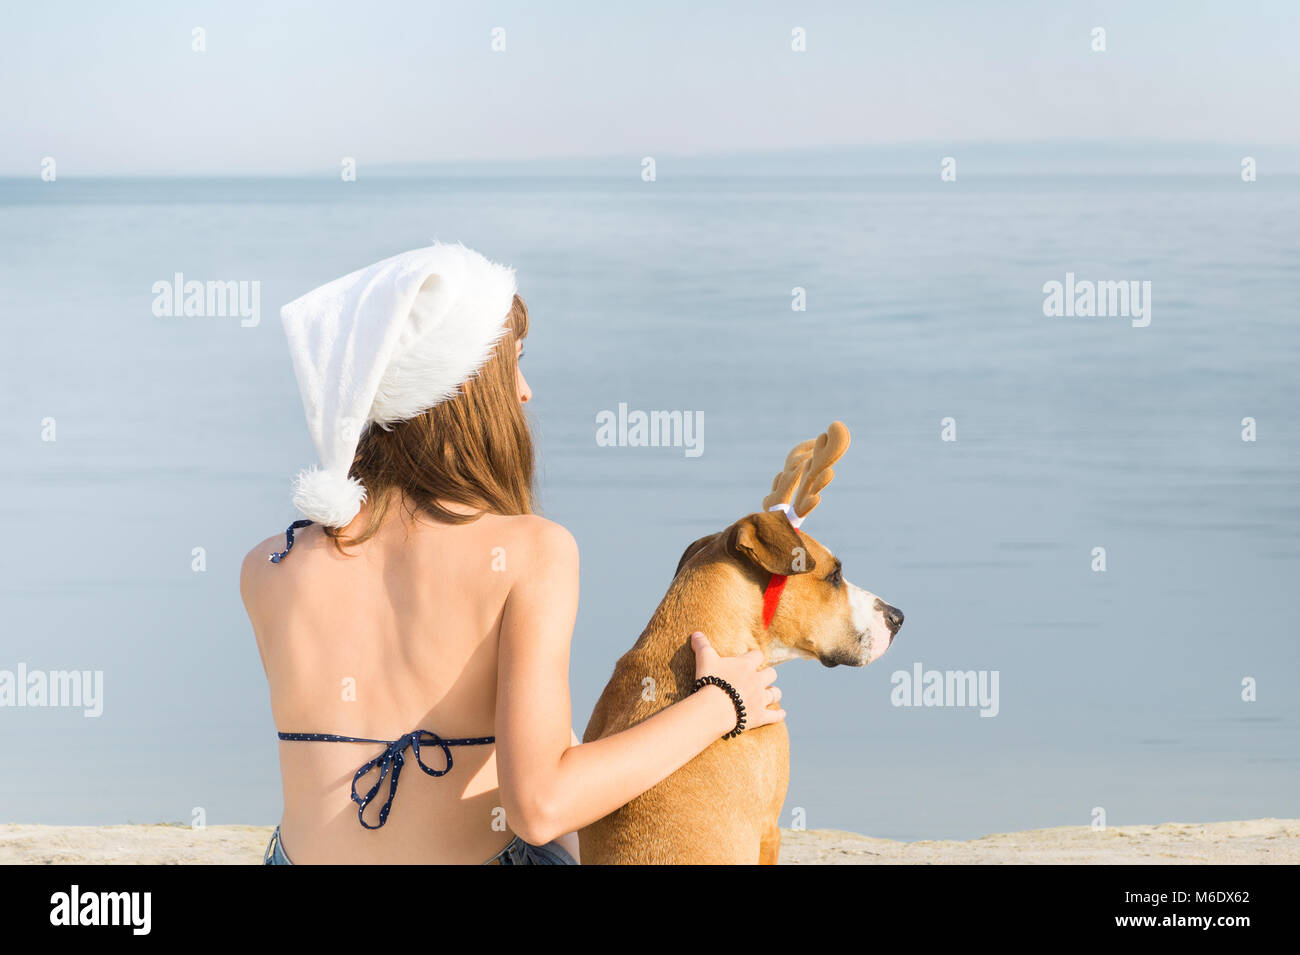 young female person in santa claus hat sit on beach next to staffordshire terier puppy with toy reindeer horns - Stock Image